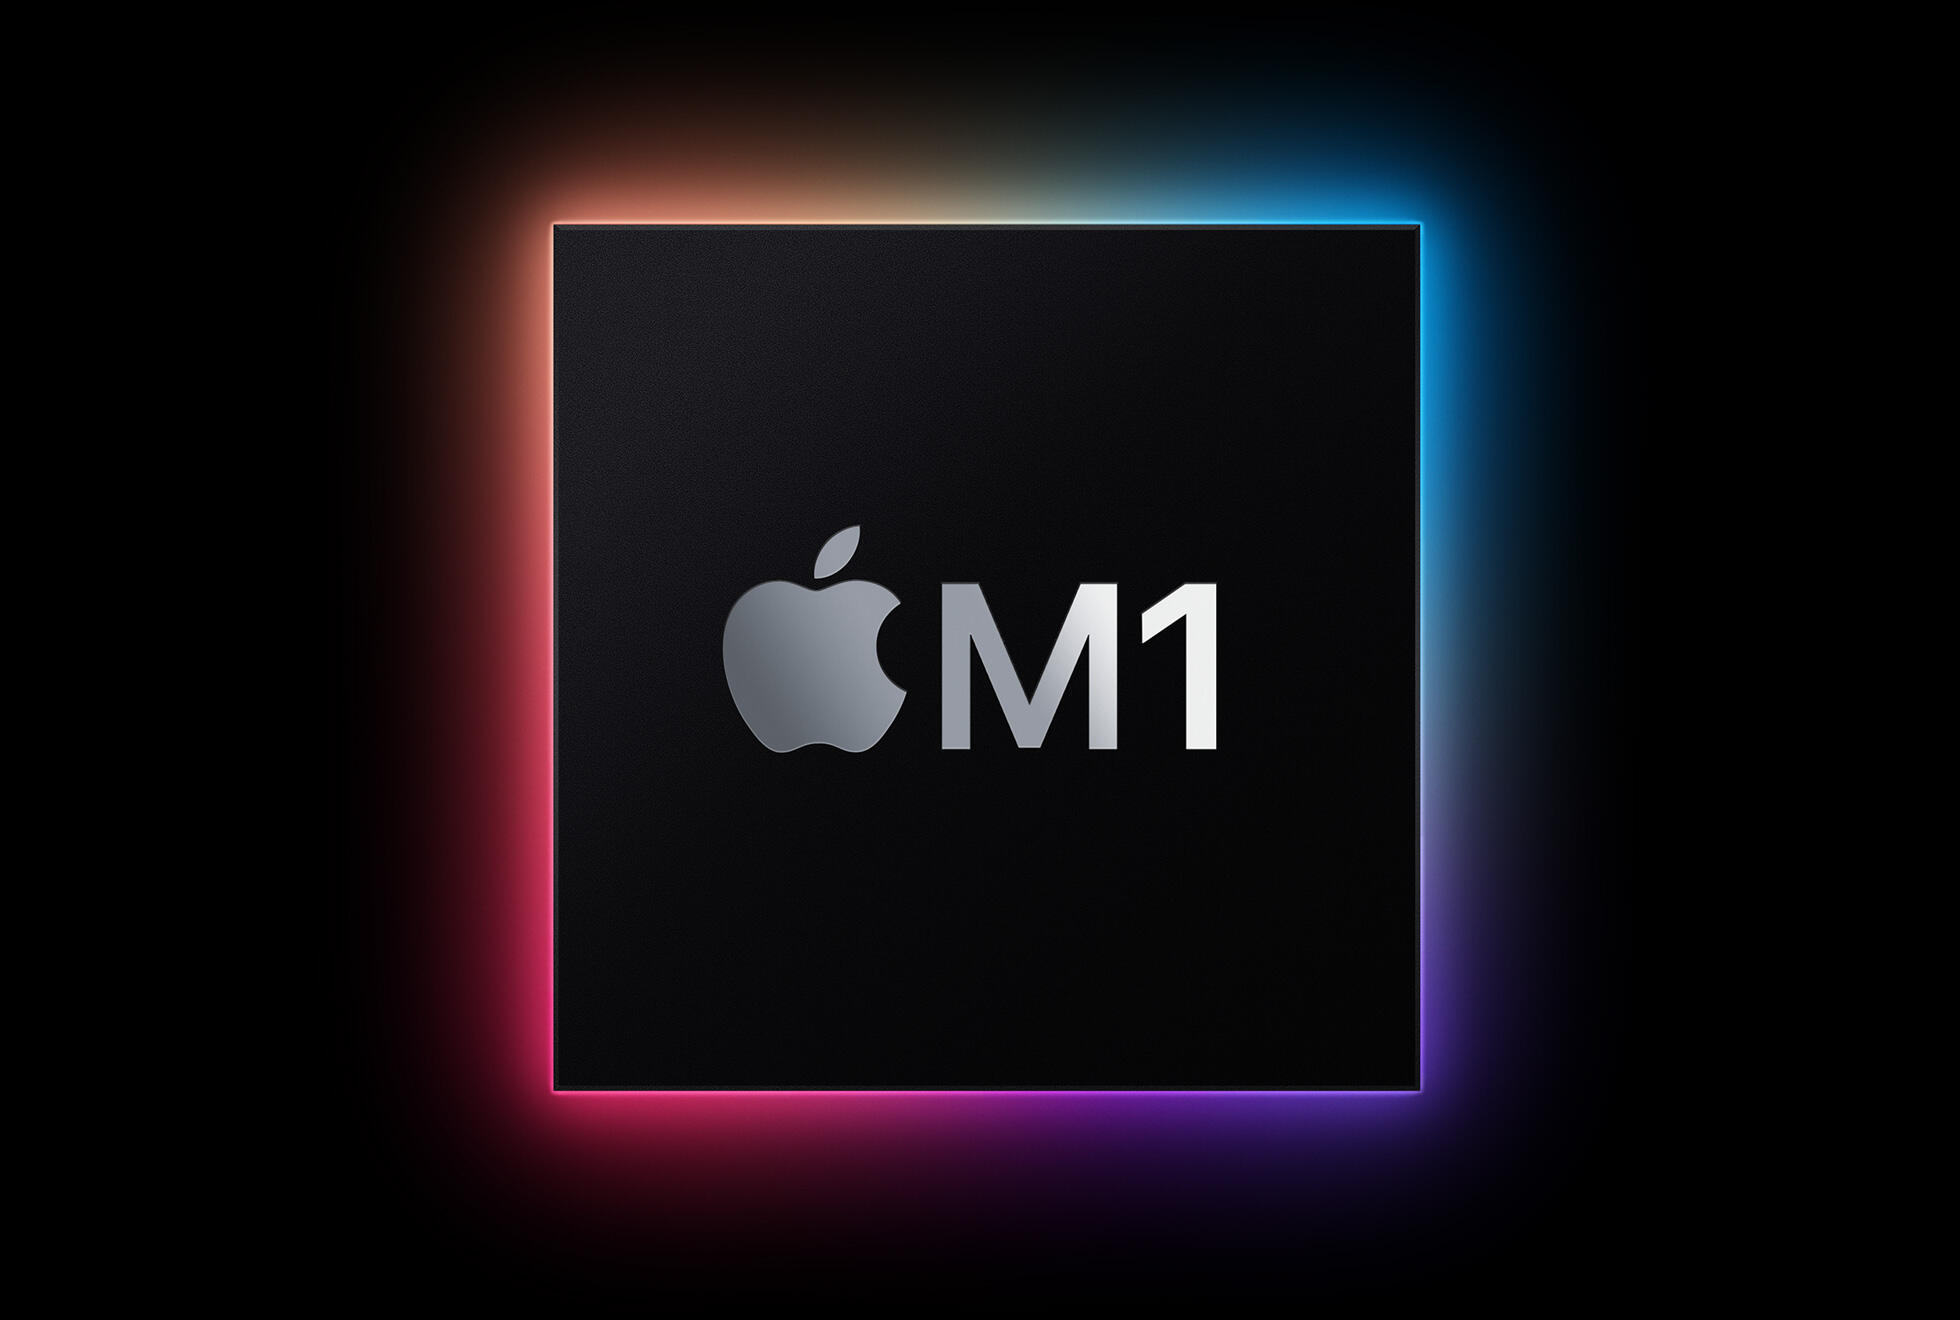 apple-new-m1-chip-graphic-11102020